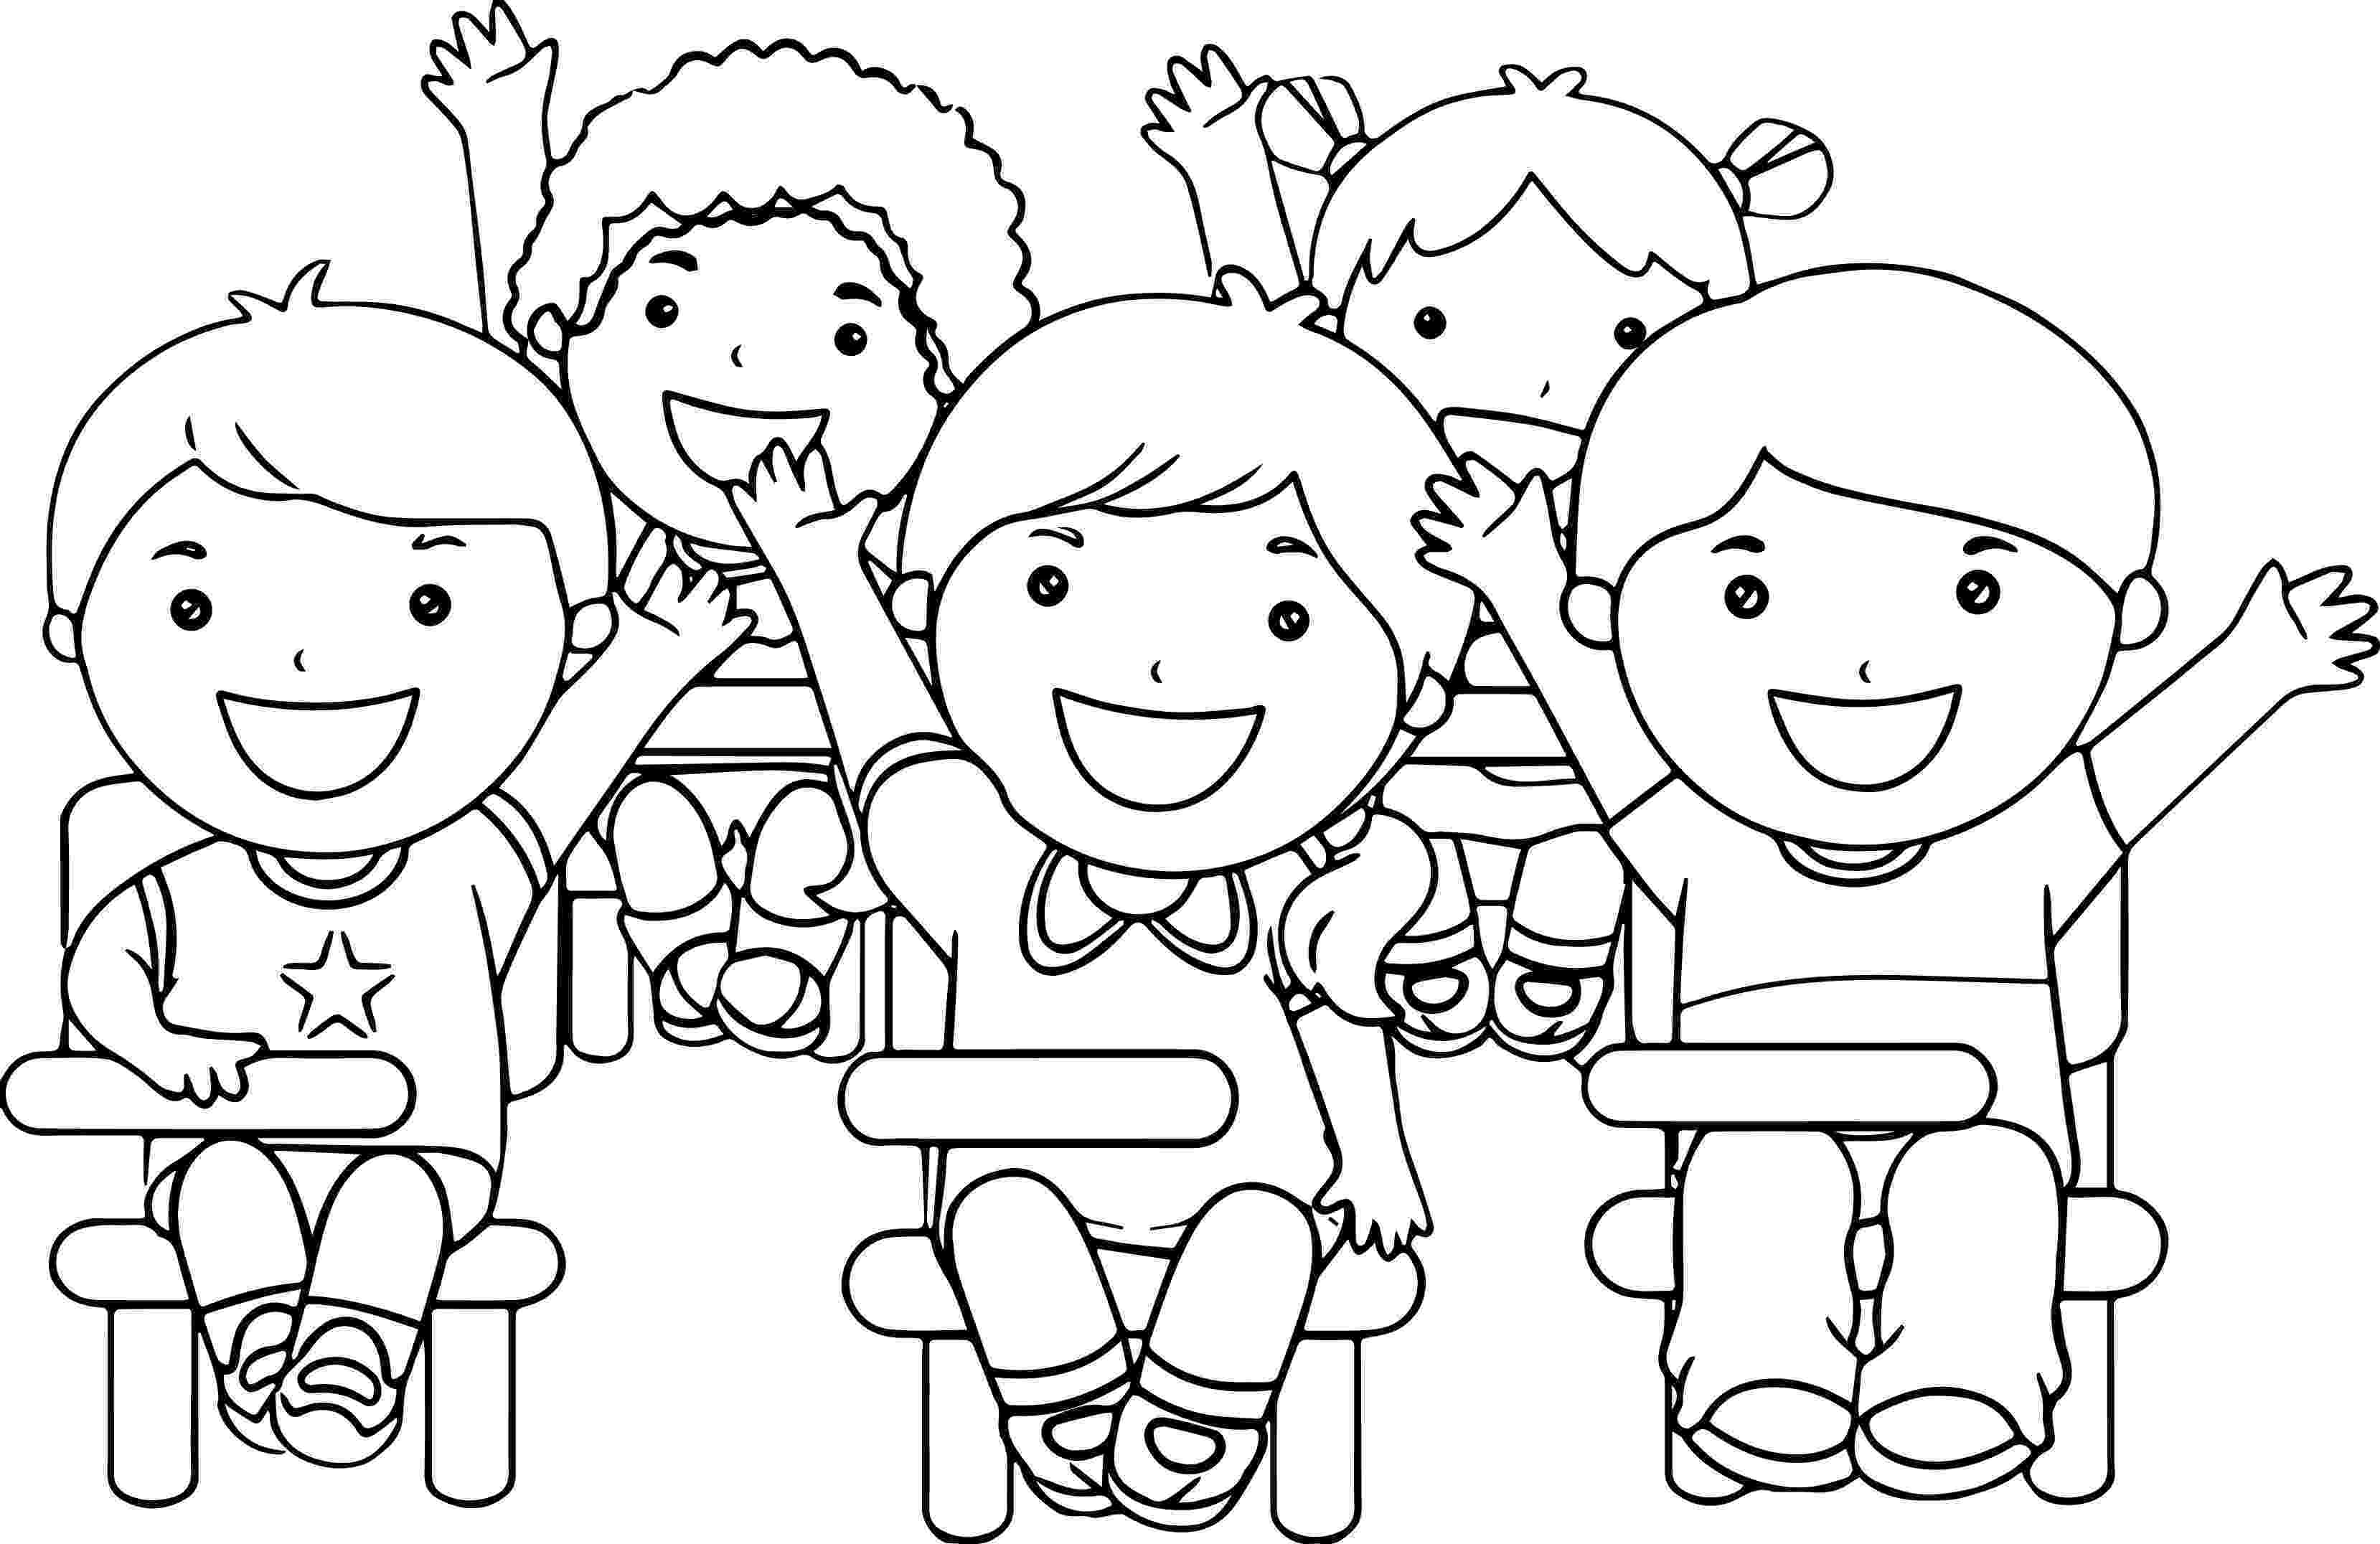 student coloring page reviewing student coloring child coloring student page coloring